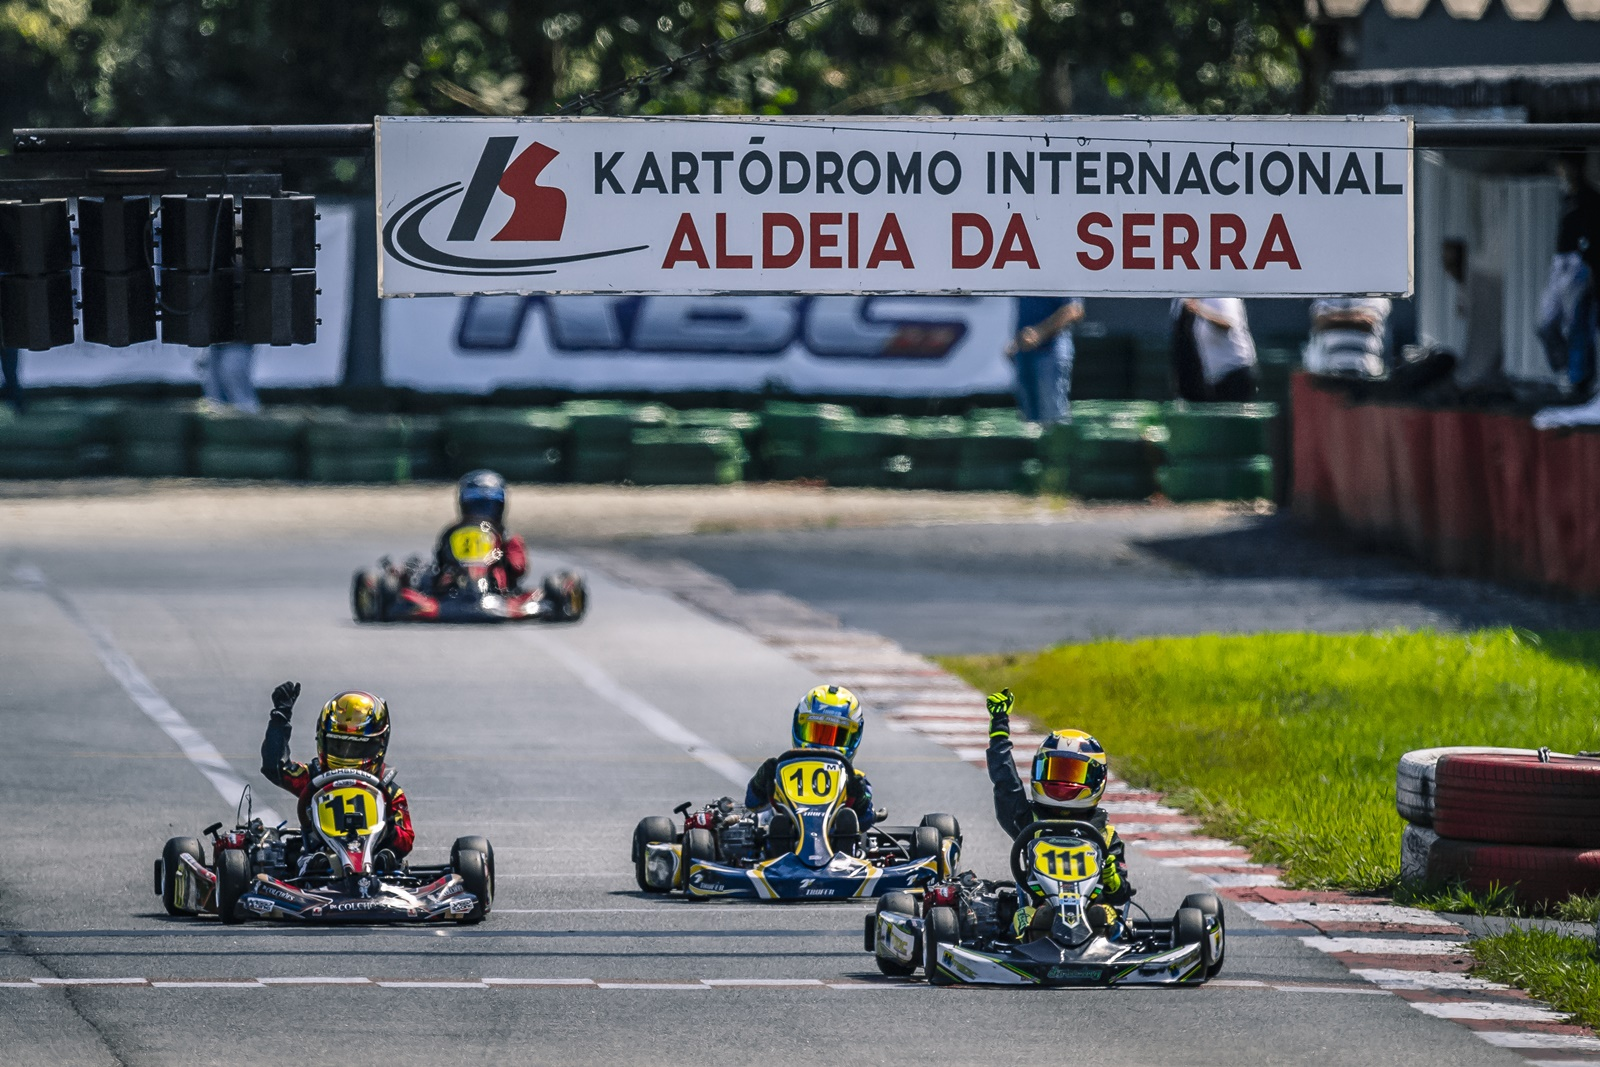 Photo of Kart – Com apenas 8 anos, Augustus Toniolo vence etapa no Paulista Light de Kart na categoria Mirim